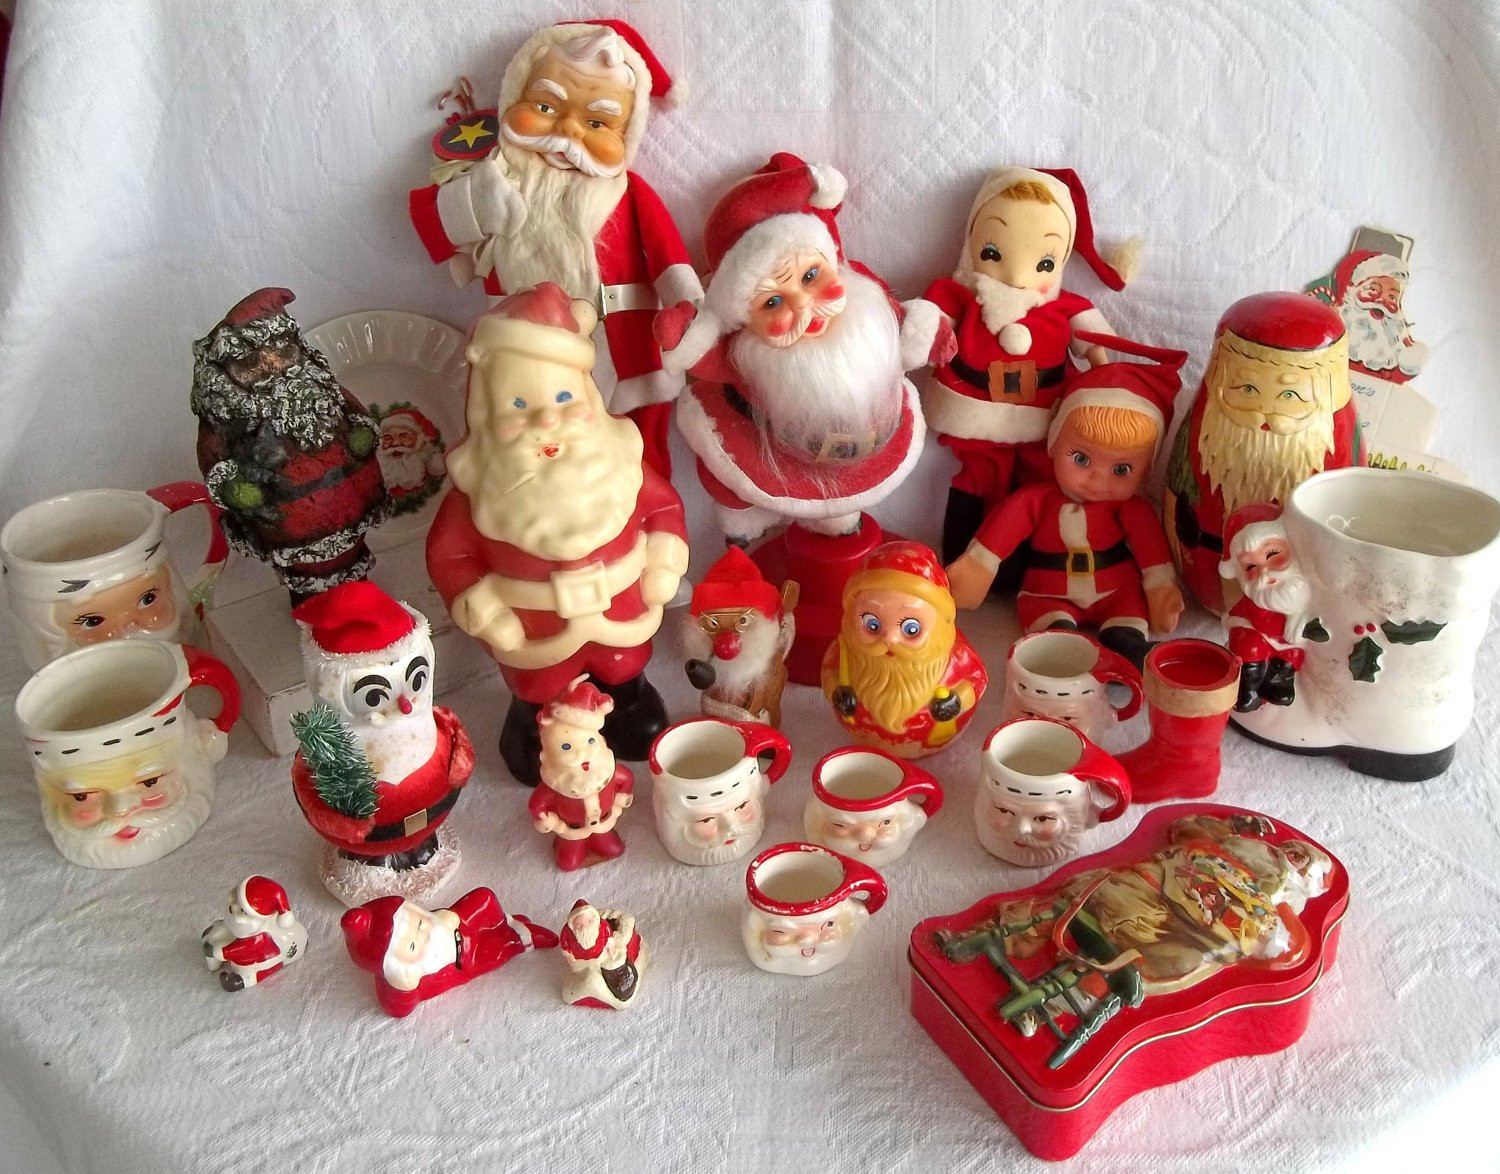 Retro Christmas Decorations Luxury Vintage Christmas Santa Claus Decorations 1940s 1980s 28 Of Brilliant 48 Pics Retro Christmas Decorations